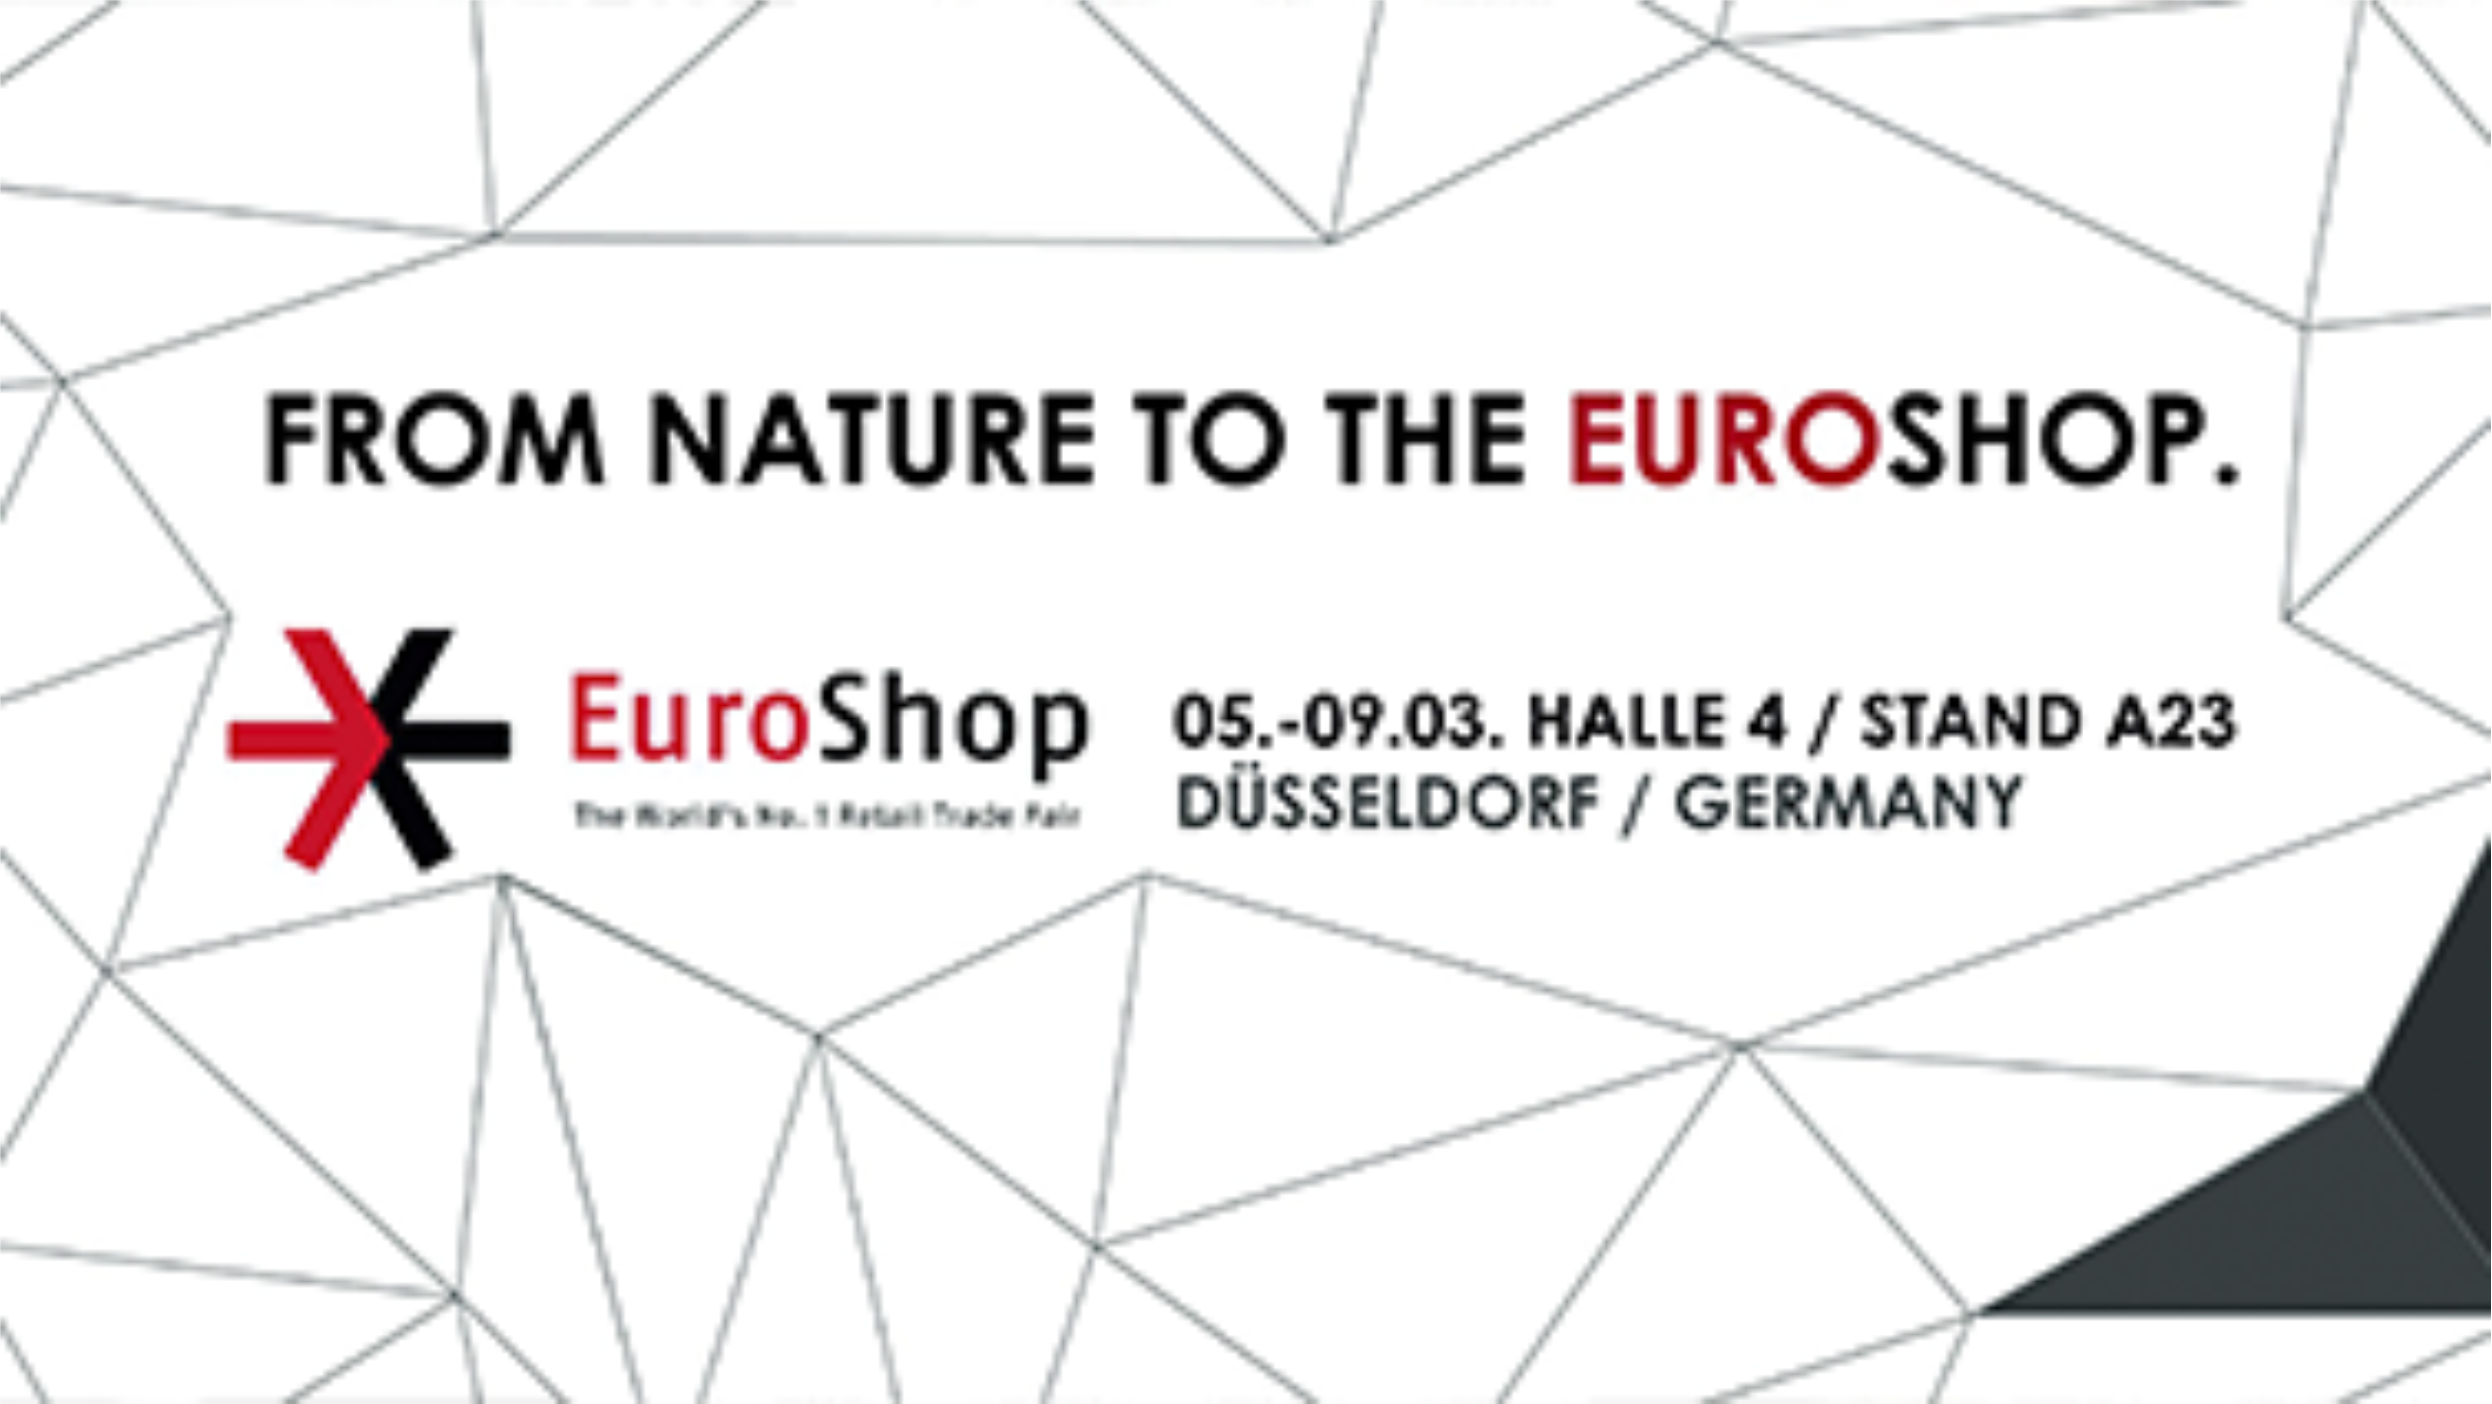 From nature to Euroshop